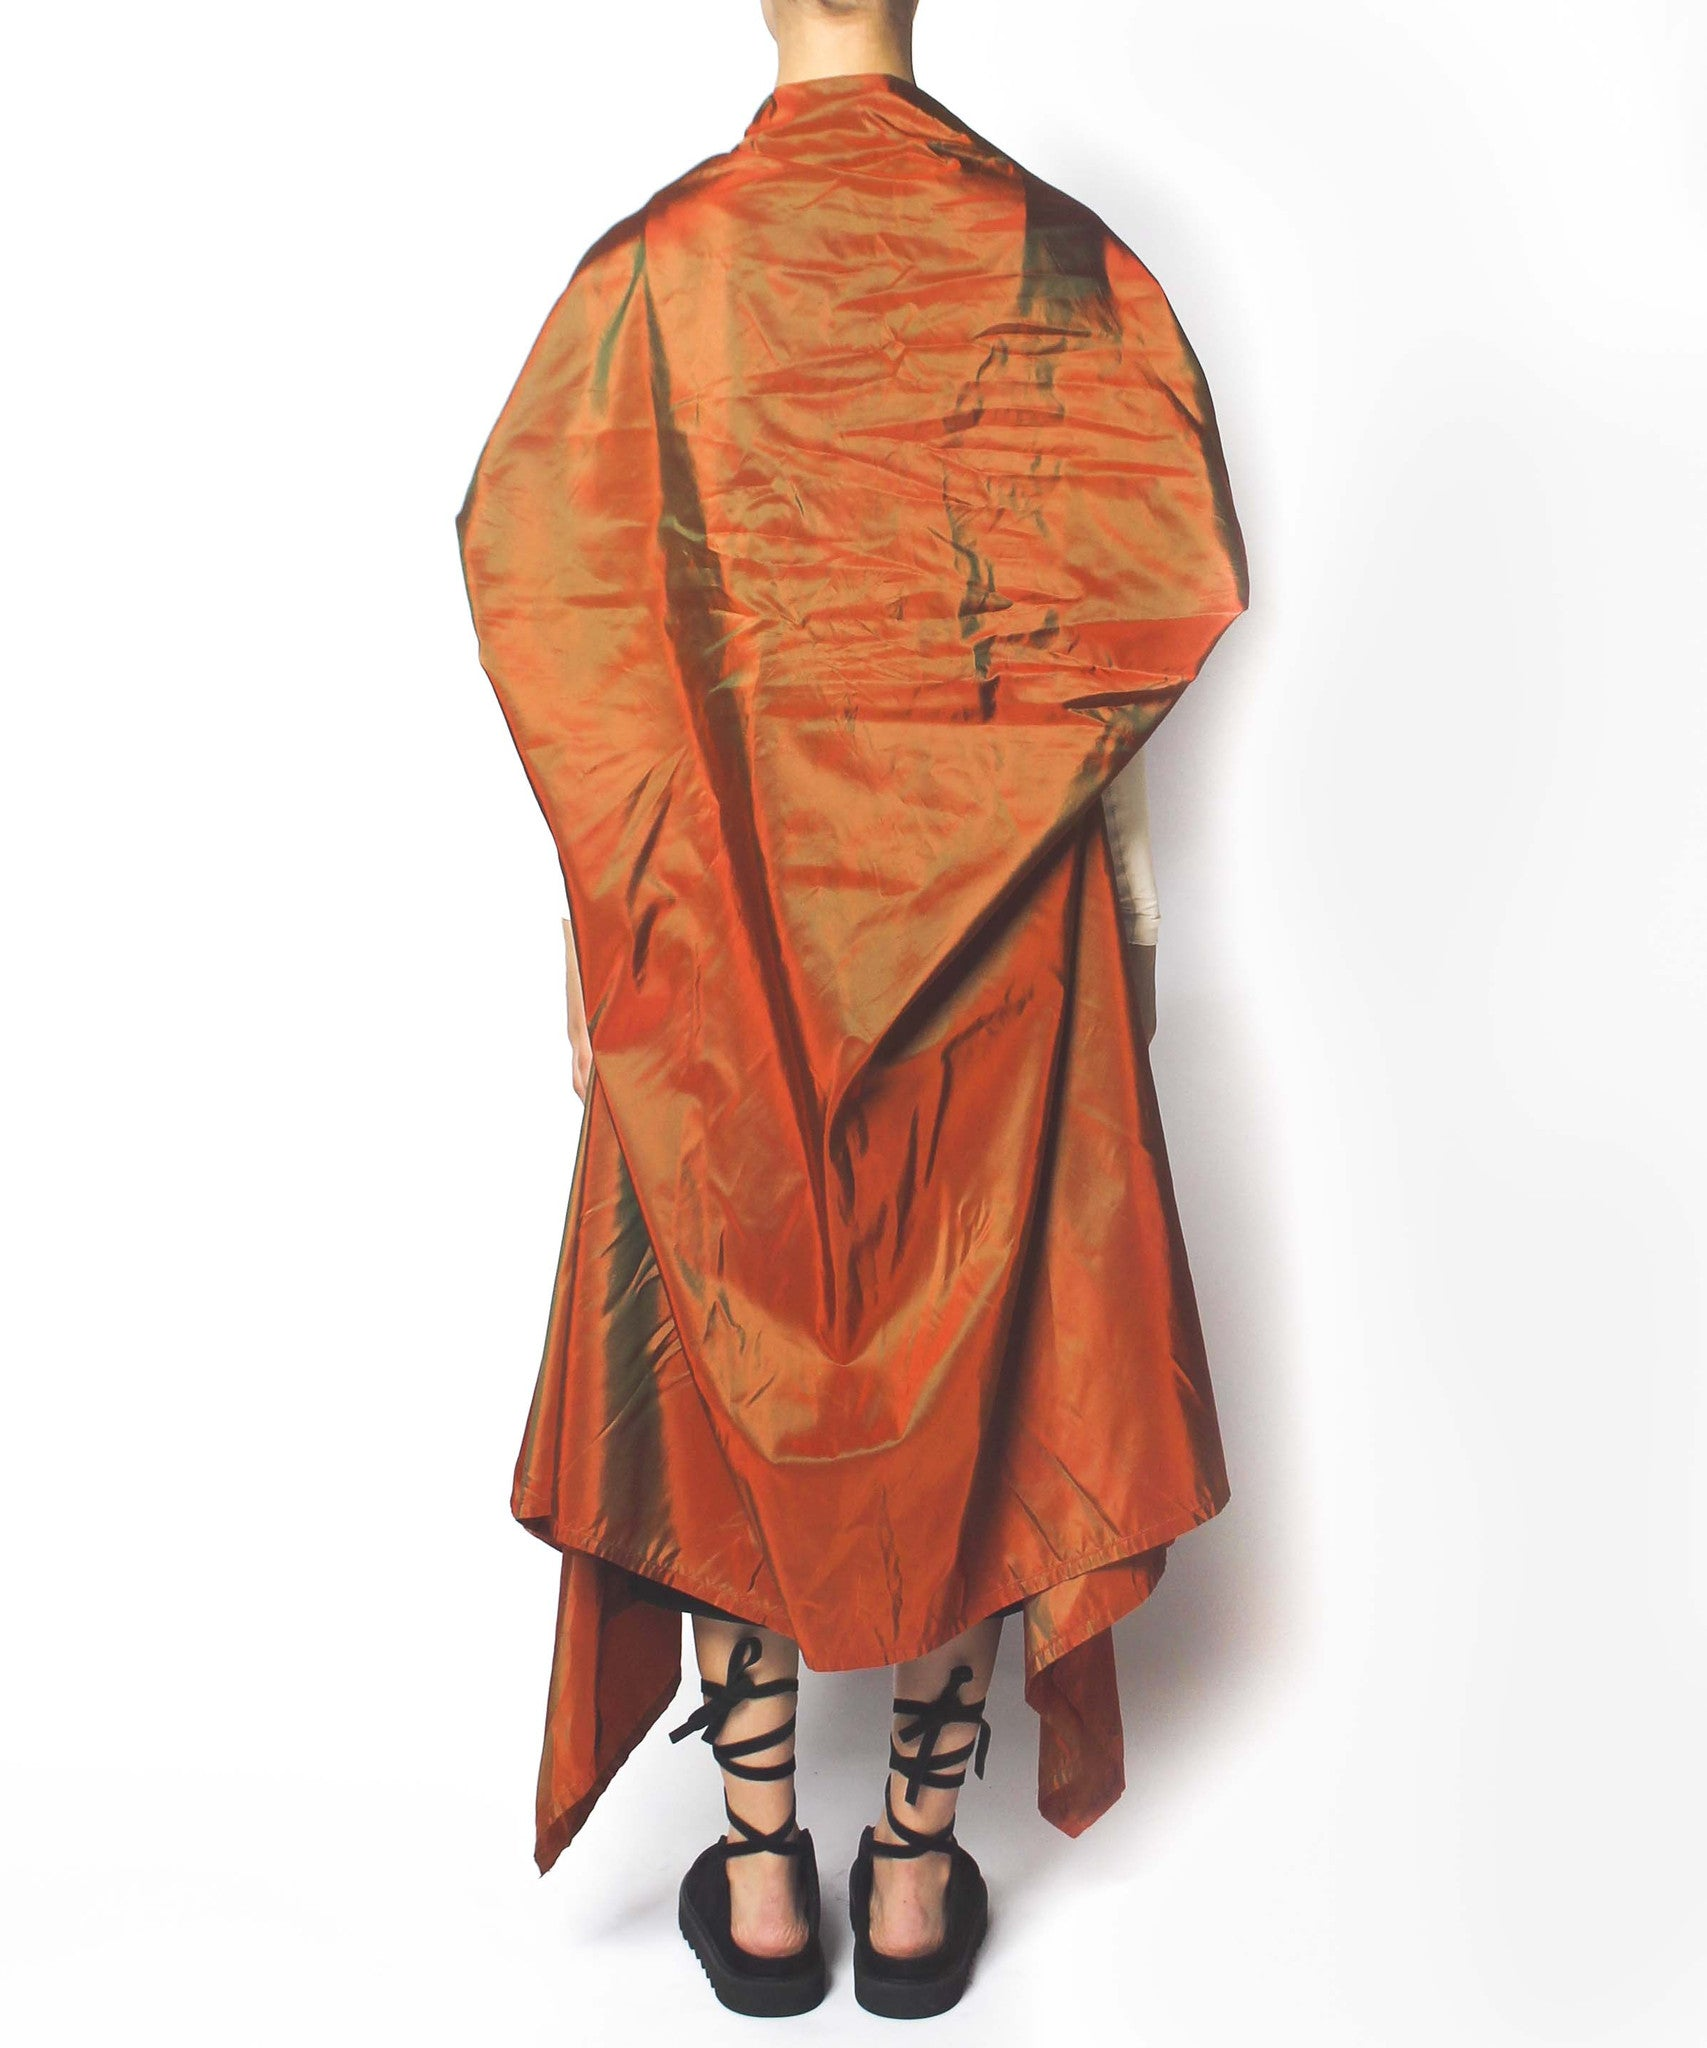 Jean Paul Gaultier 90s Pumpkin Taffeta Oversize Asymmetrical Coat with Cream Tight Sleeves